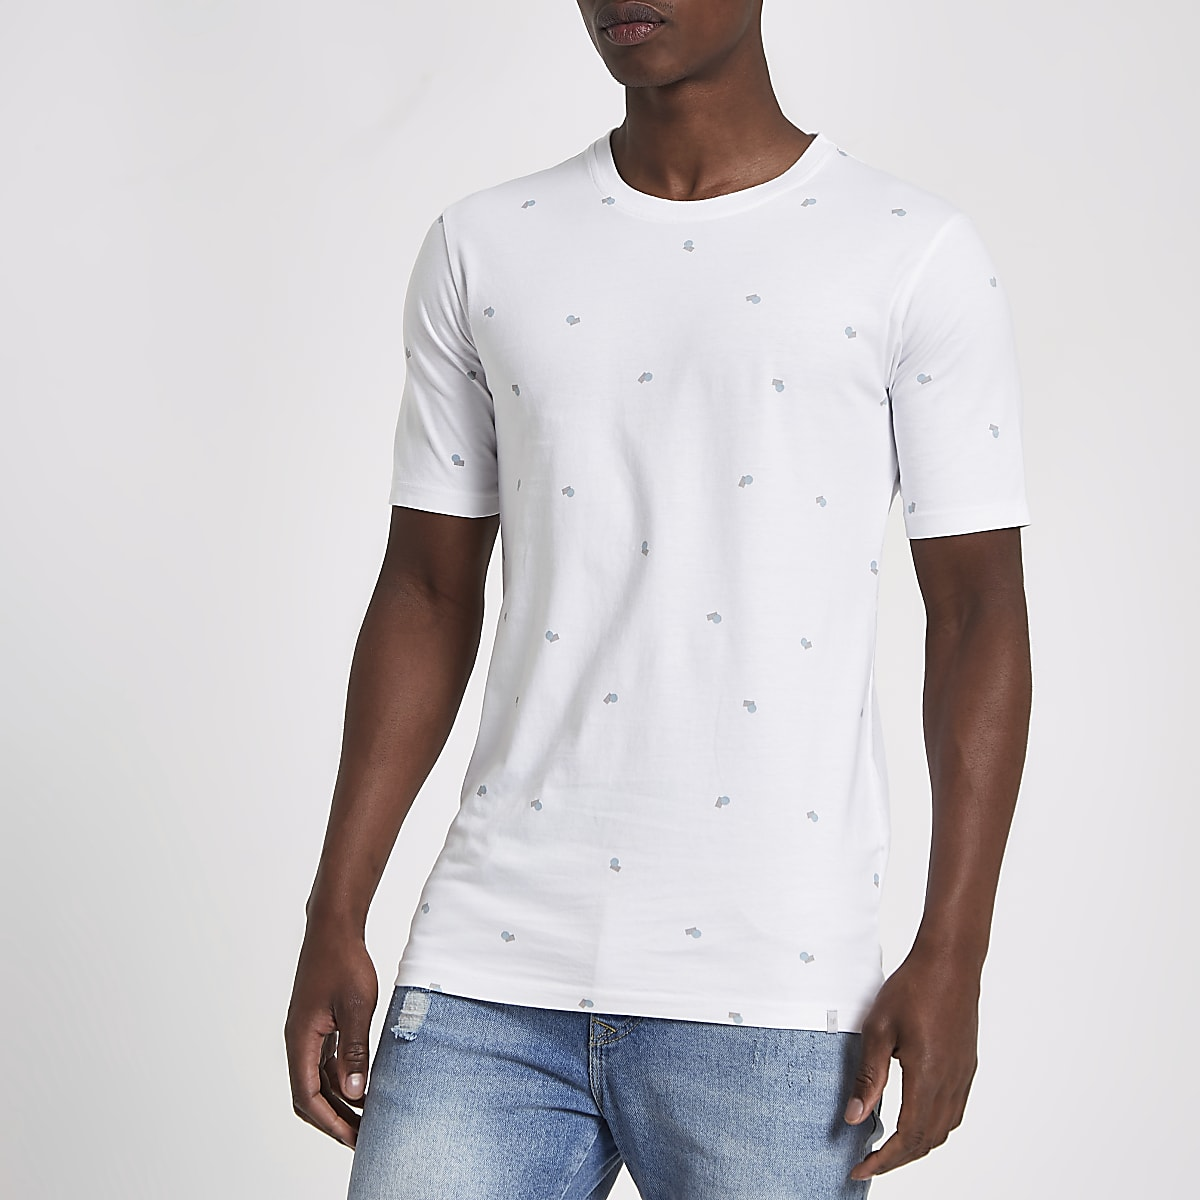 Minimum white print T-shirt